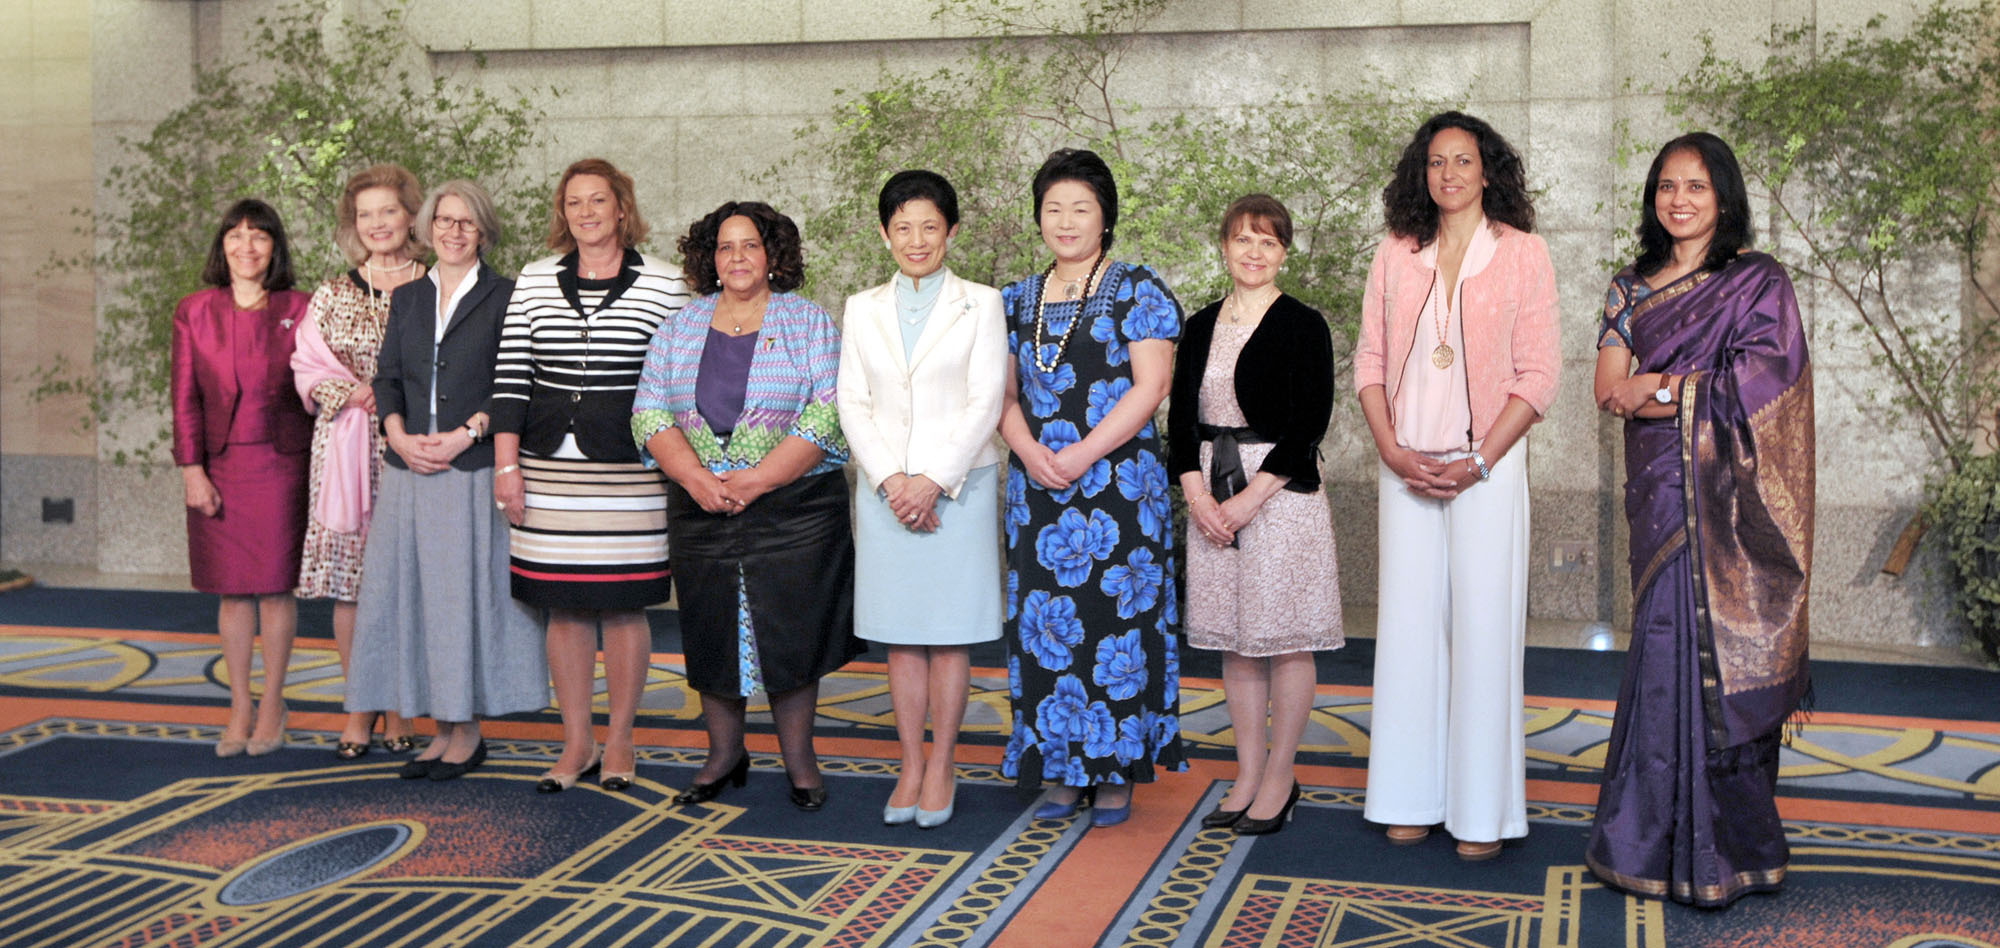 (From left) Malena Mandiola de Gardella, wife of the Argentine chief of mission, poses with ambassadors wives Lise Frederiksen (Denmark); Elizabeth Von Werthern (Germany); Gudrun Margret Solonsdottir (Iceland); South African Ambassador Beryl Rose Sisulu; Princess Takamado; Momoe Fritz (Micronesia); Liisa Viratamo (Finland); Katerina Mathioudaki (Greece); and Vidya Chinoy (India) at the opening ceremony of the 16th Annual World Gardening Fair in Hotel Okura on May 3. The fair runs through May 7. | YOSHIAKI MIURA